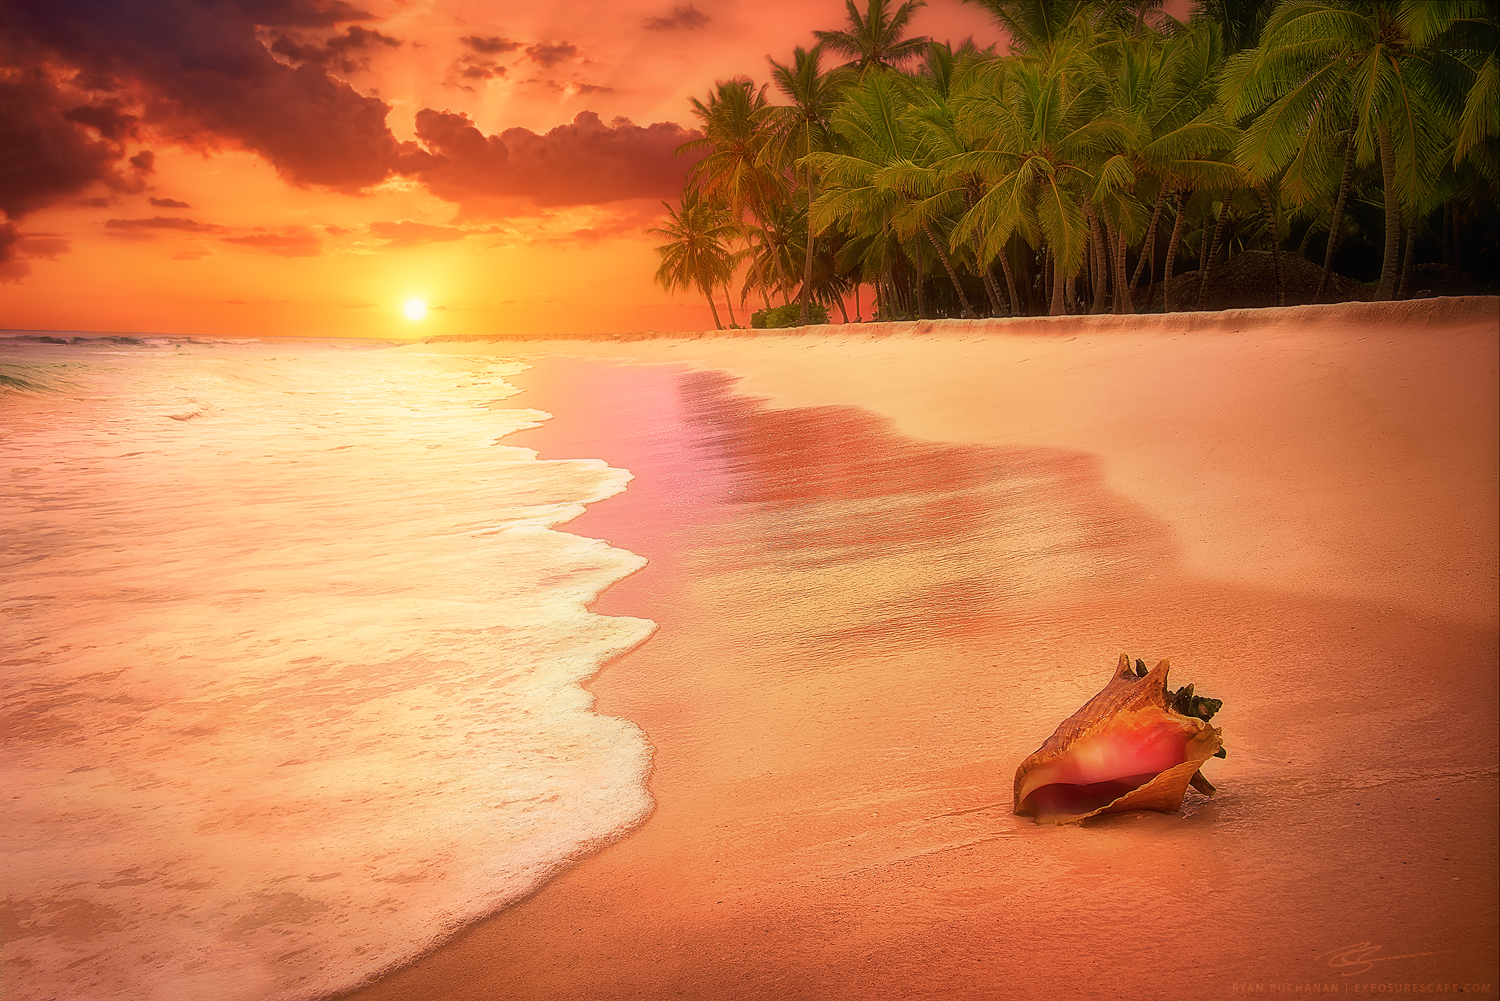 beach, dominican republic, ocean, sunset, ryan buchanan